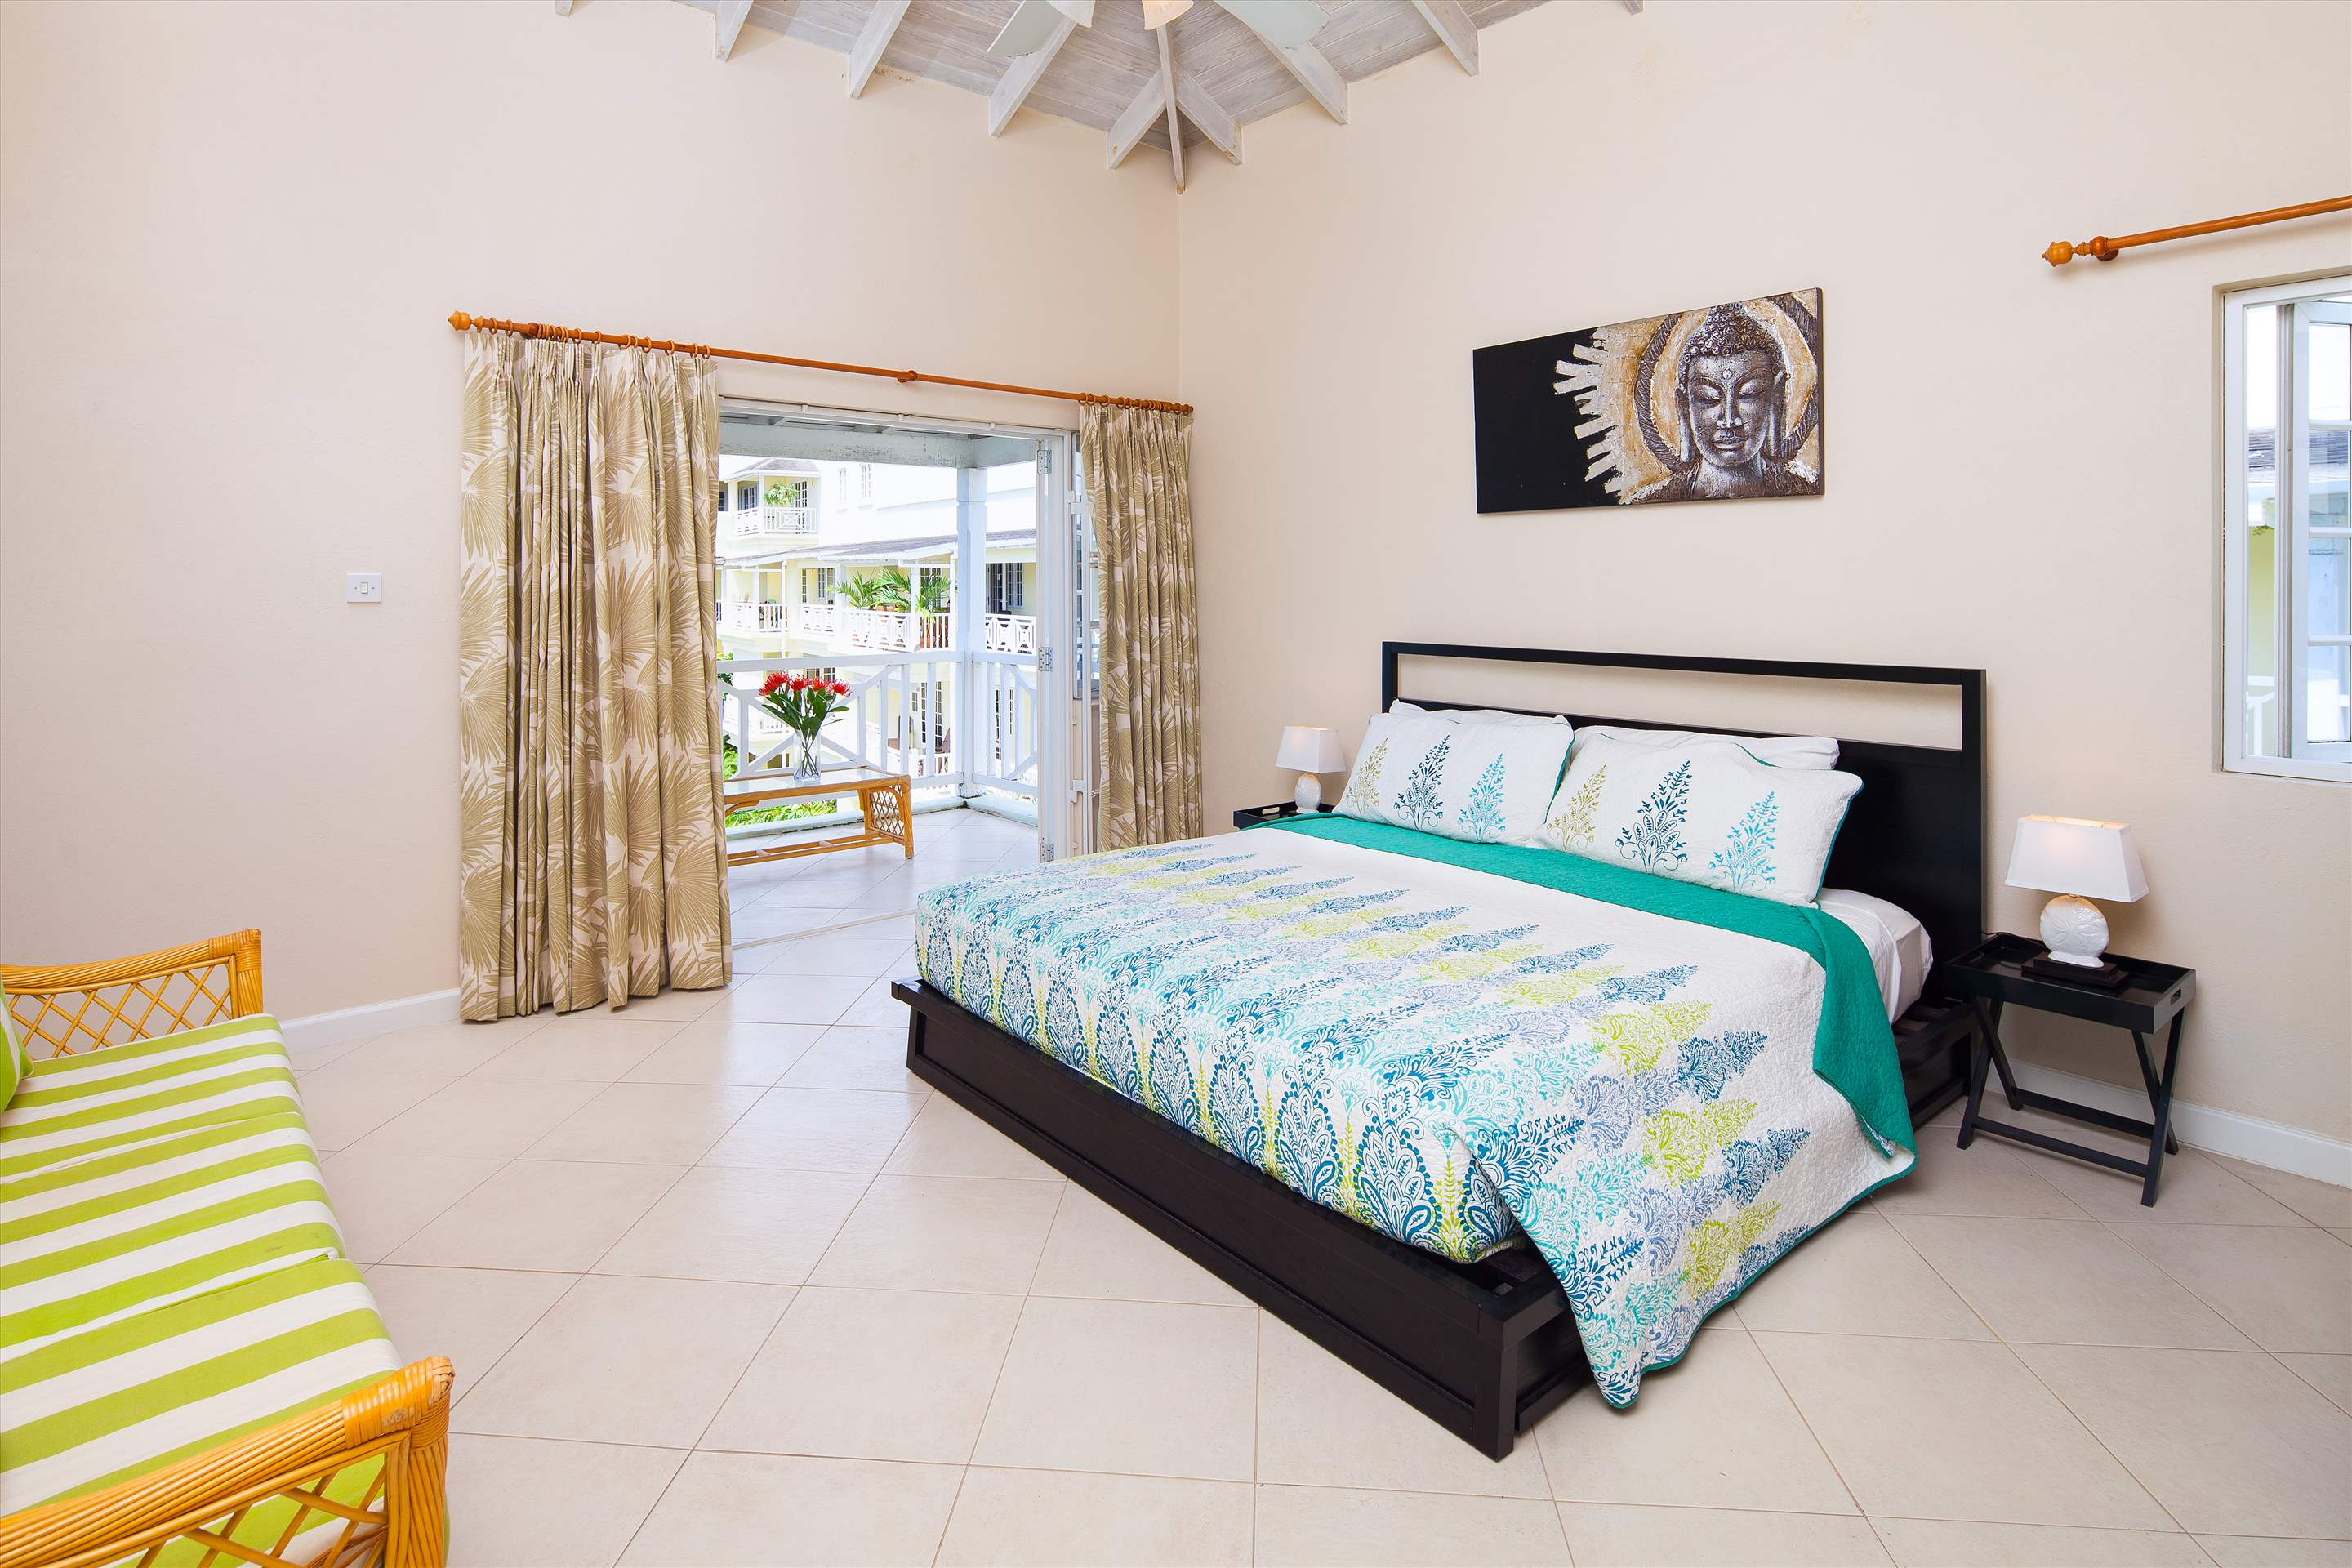 Margate Gardens 4, 2 bedroom, 2 bedroom apartment in St. Lawrence Gap & South Coast, Barbados Photo #8